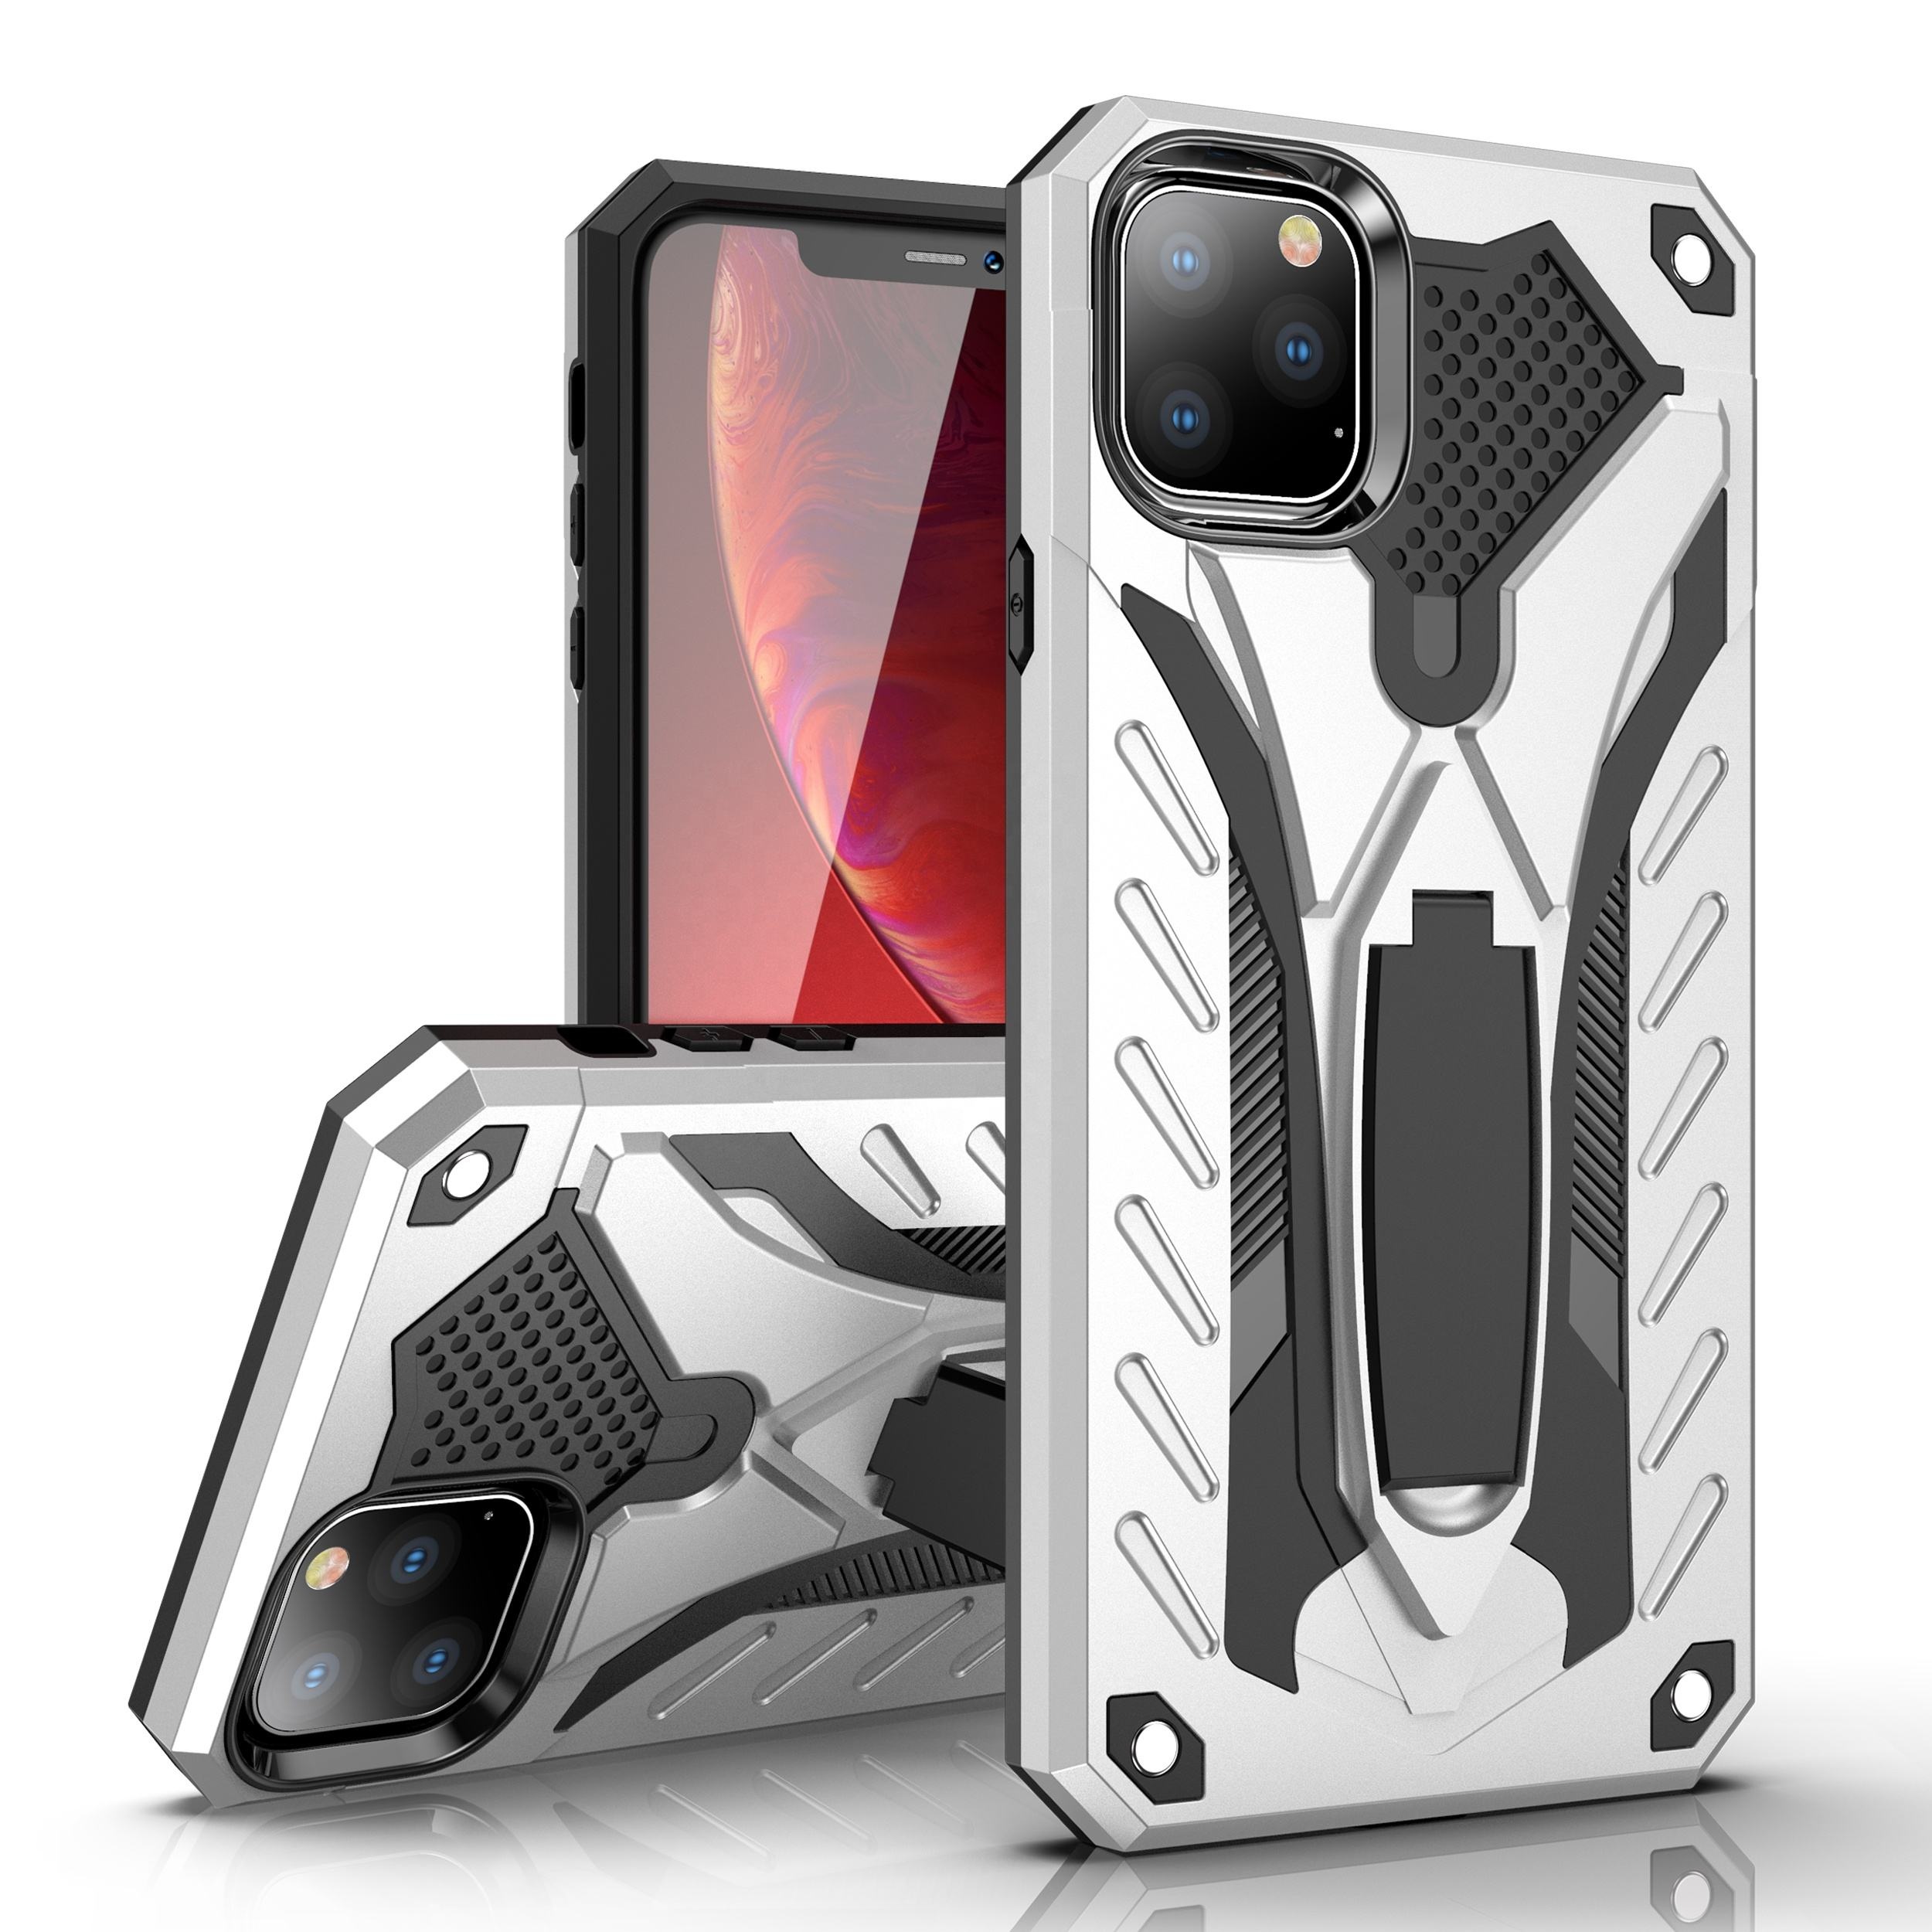 ZHIKE Hard PC Anti-Drop Mobile Phone TPU Cover with Stand Kickstand Shockproof Case for iPhone 11/11 Pro/11 Pro Max